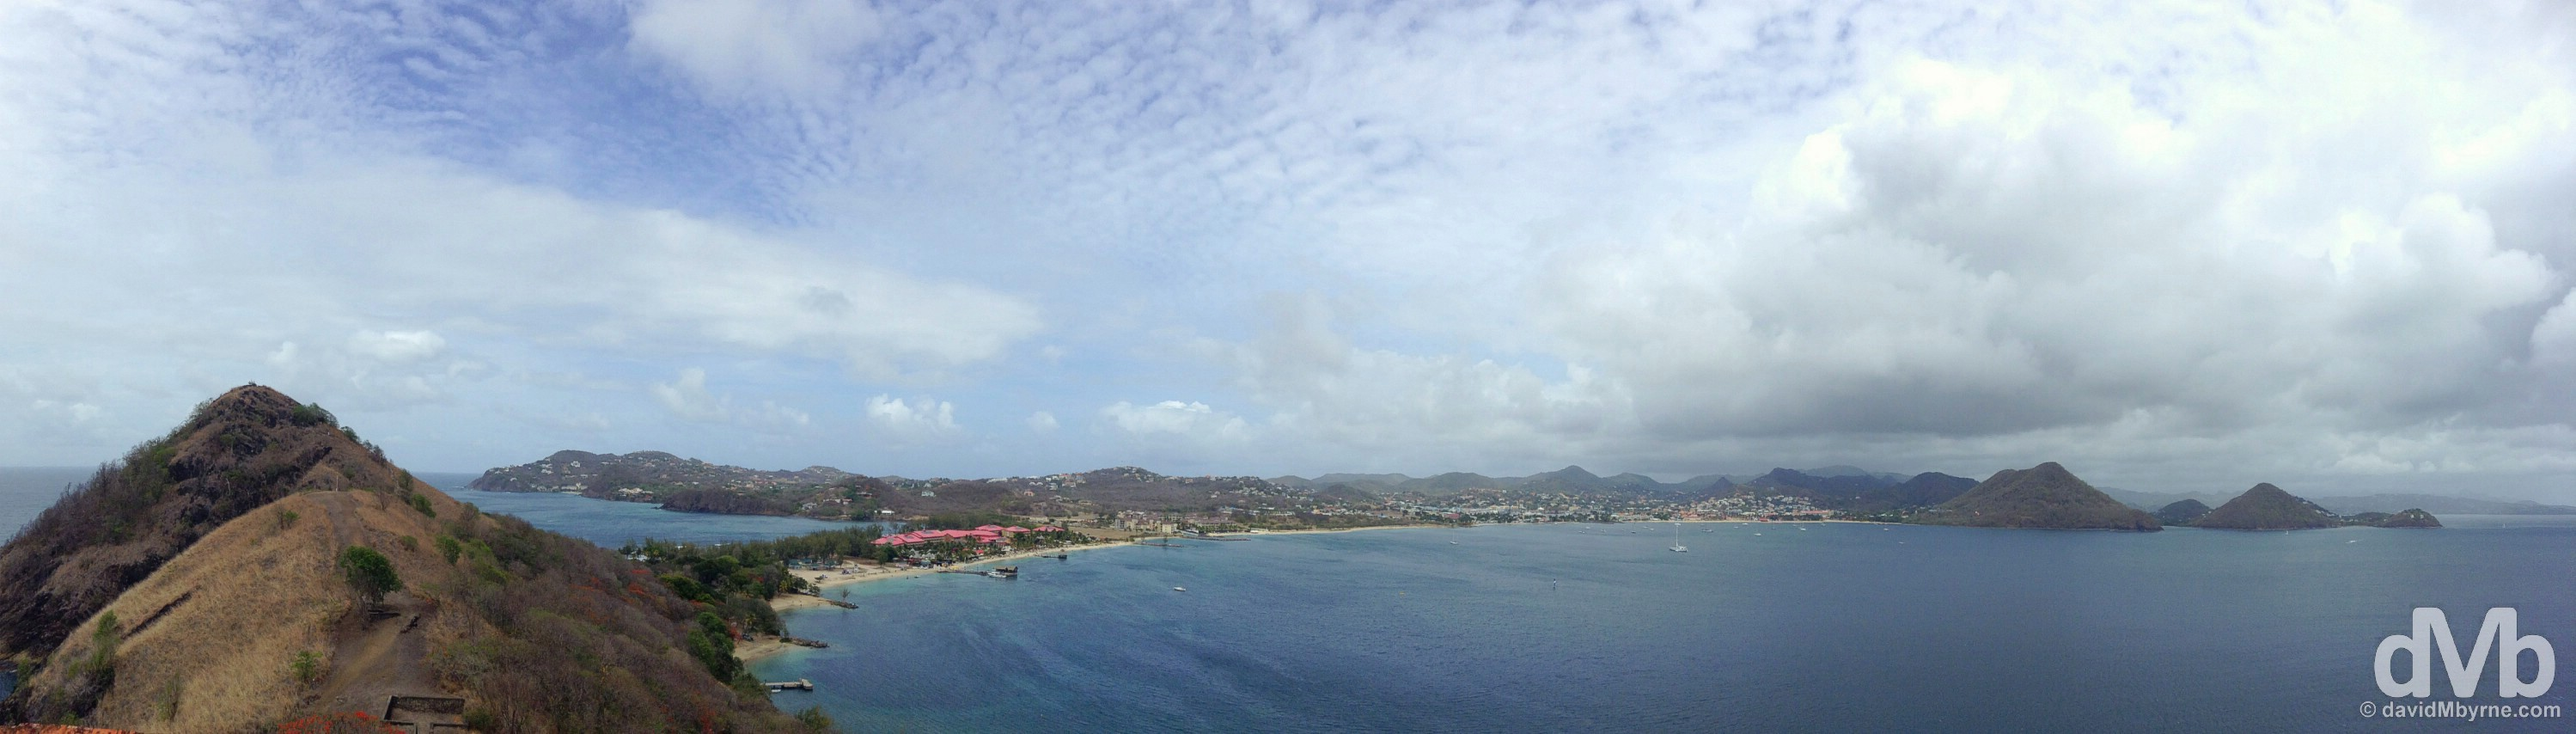 Rodney Bay & northwest St. Lucia as seen from Fort Rodney on Pigeon Island. St. Lucia, Lesser Antilles. June 16, 2015.